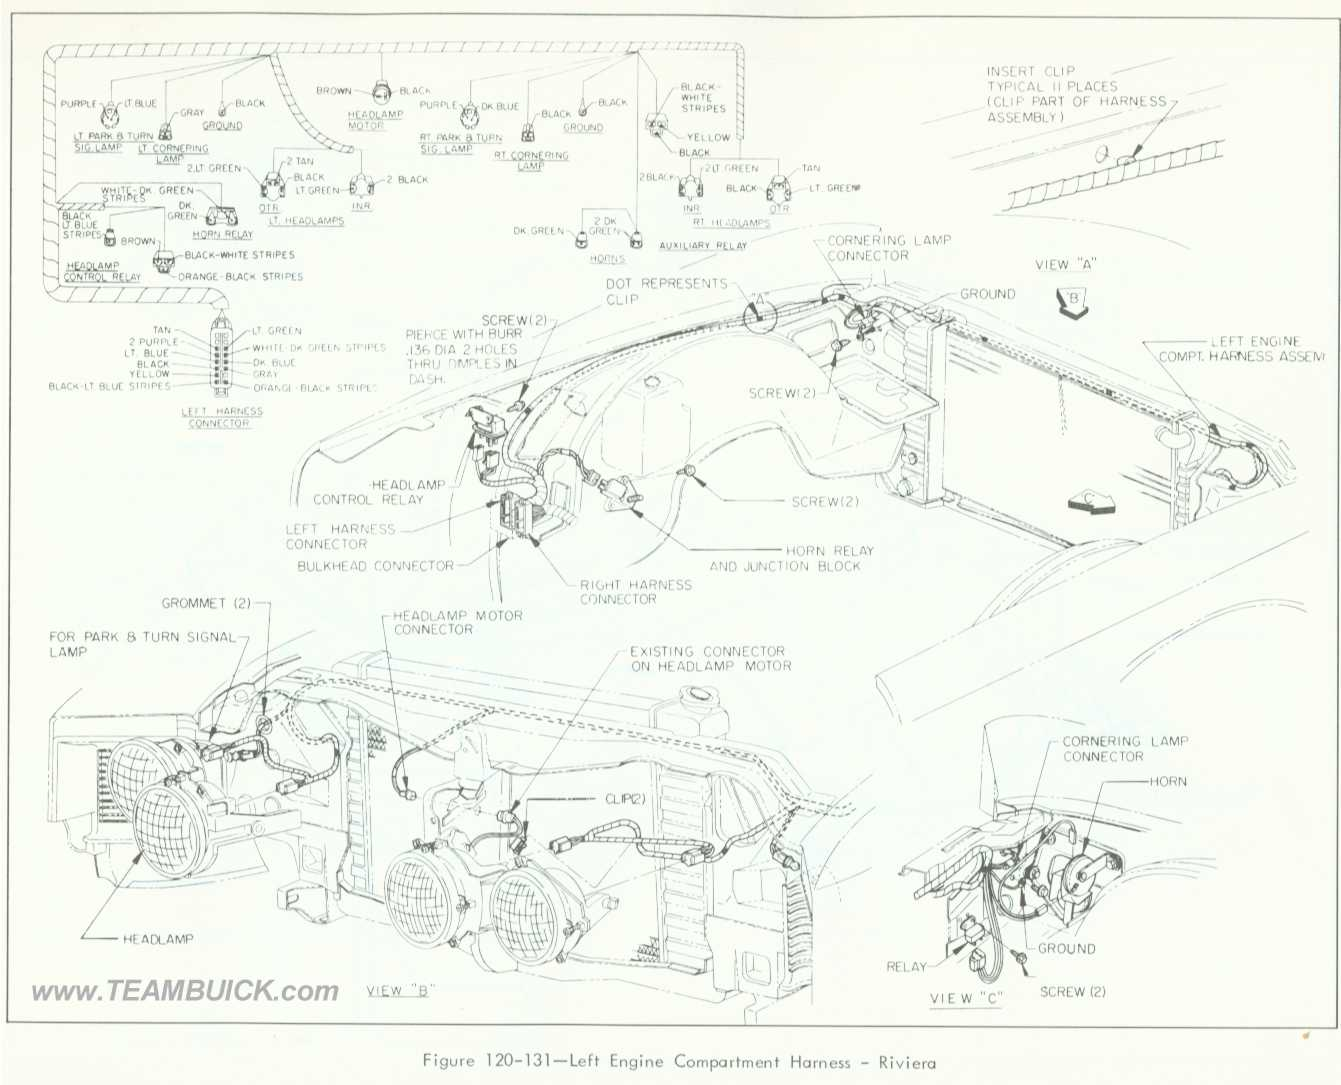 wiring diagram 64 riviera wiring automotive wiring diagrams description 120 131 wiring diagram riviera